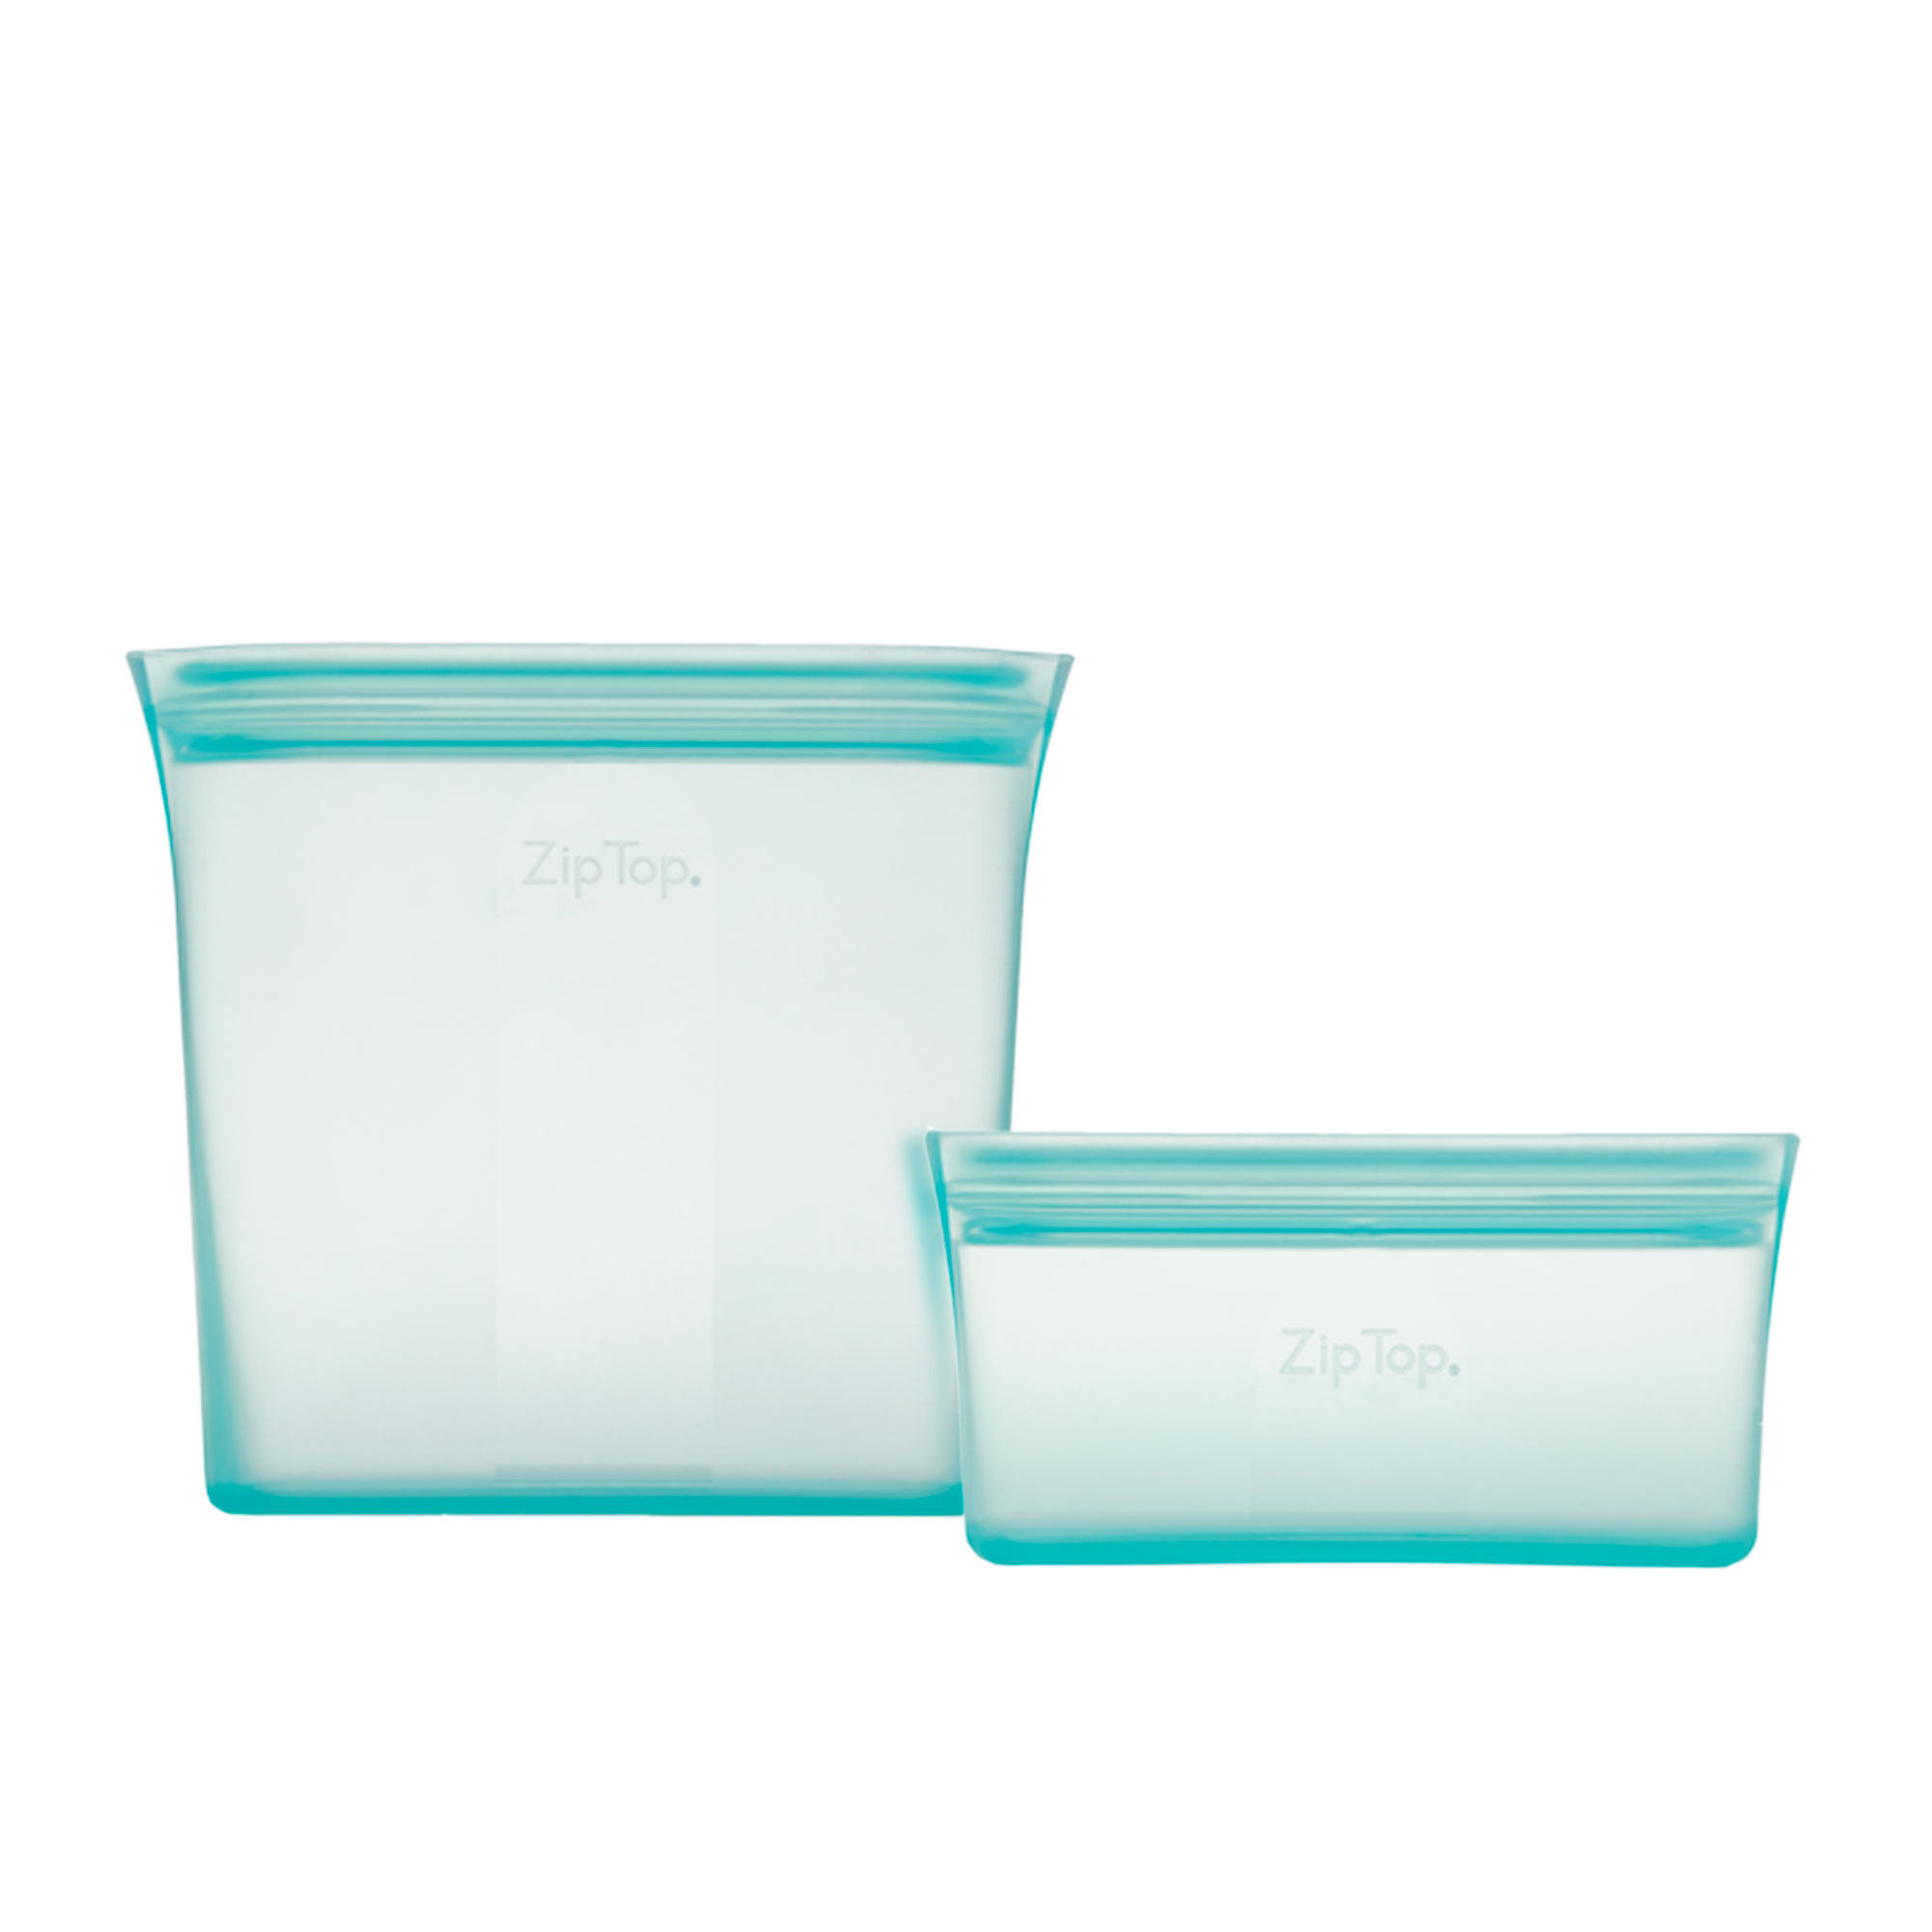 Zip Top 2pc Platinum Silicone Bag Set Teal